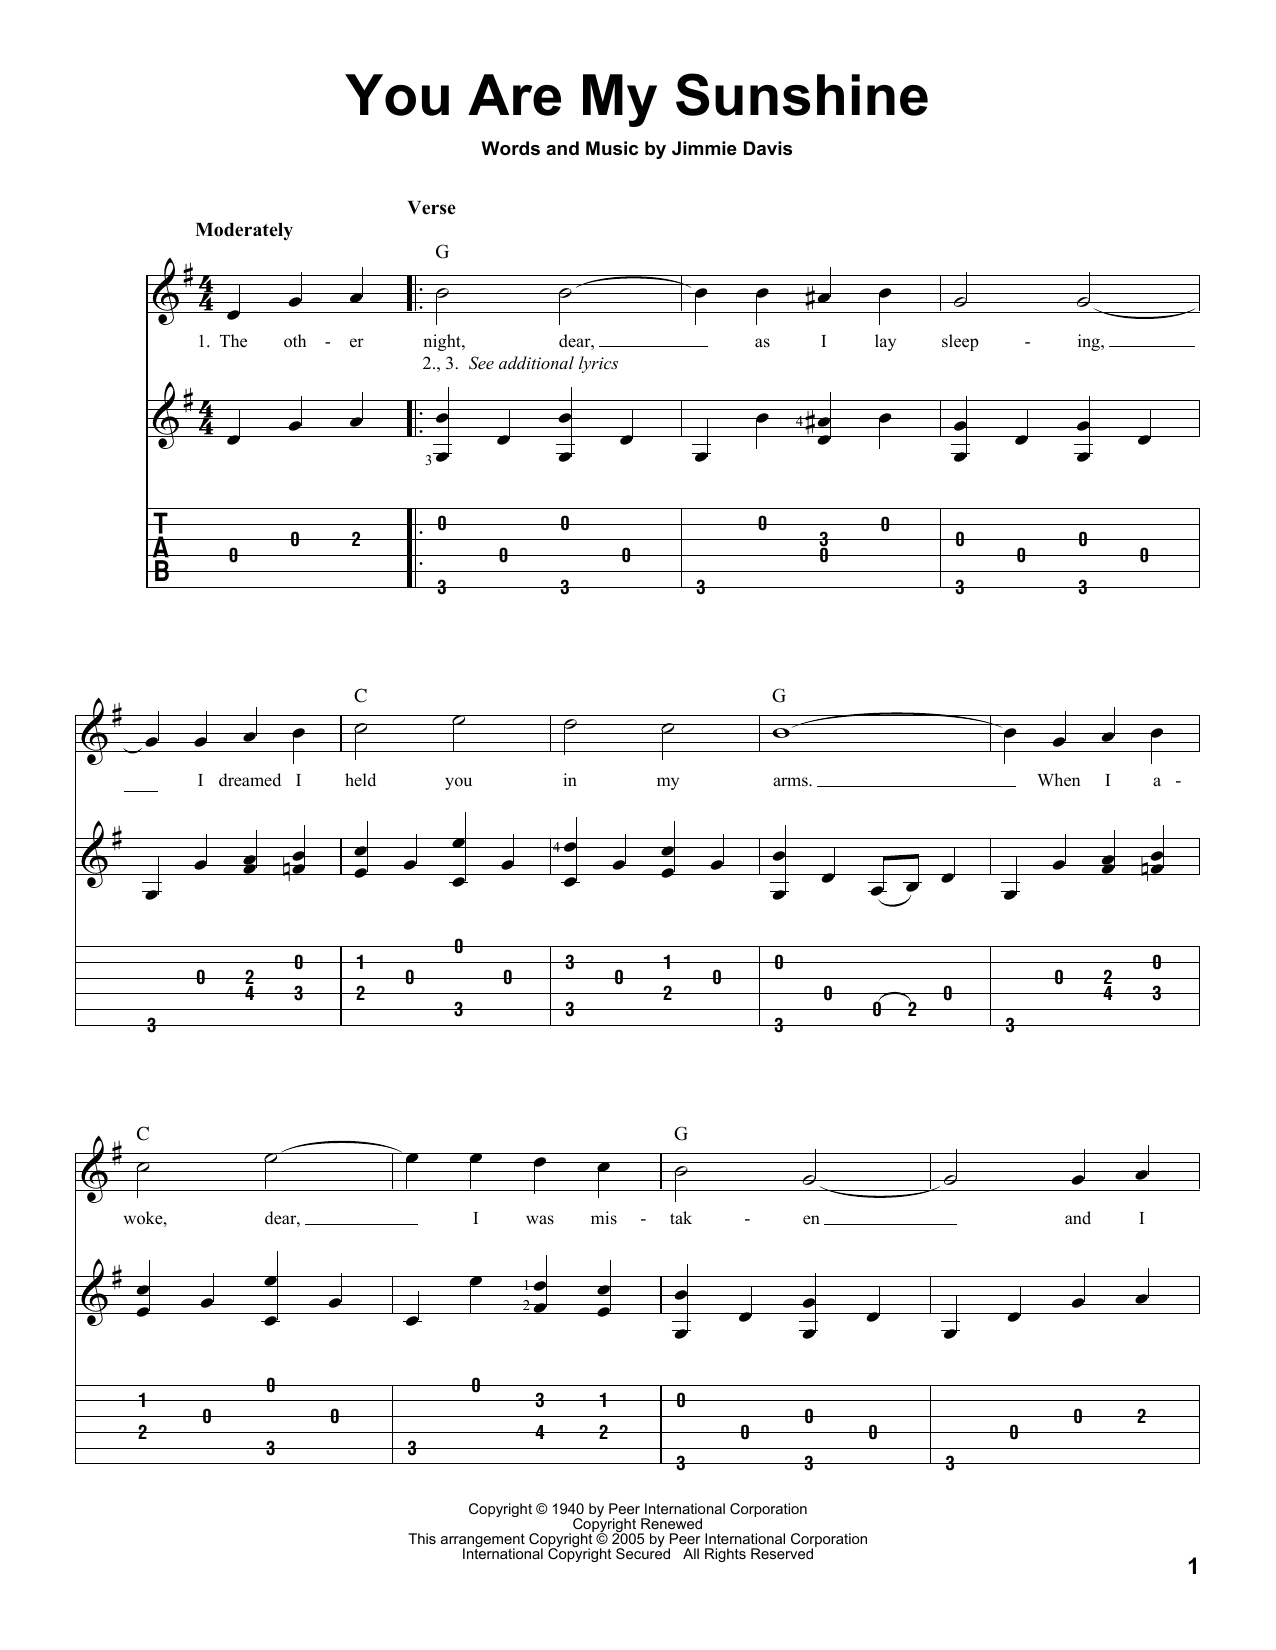 You Are My Sunshine Sheet Music Notes, Jimmie Davis Chords - Free Printable Piano Sheet Music For You Are My Sunshine